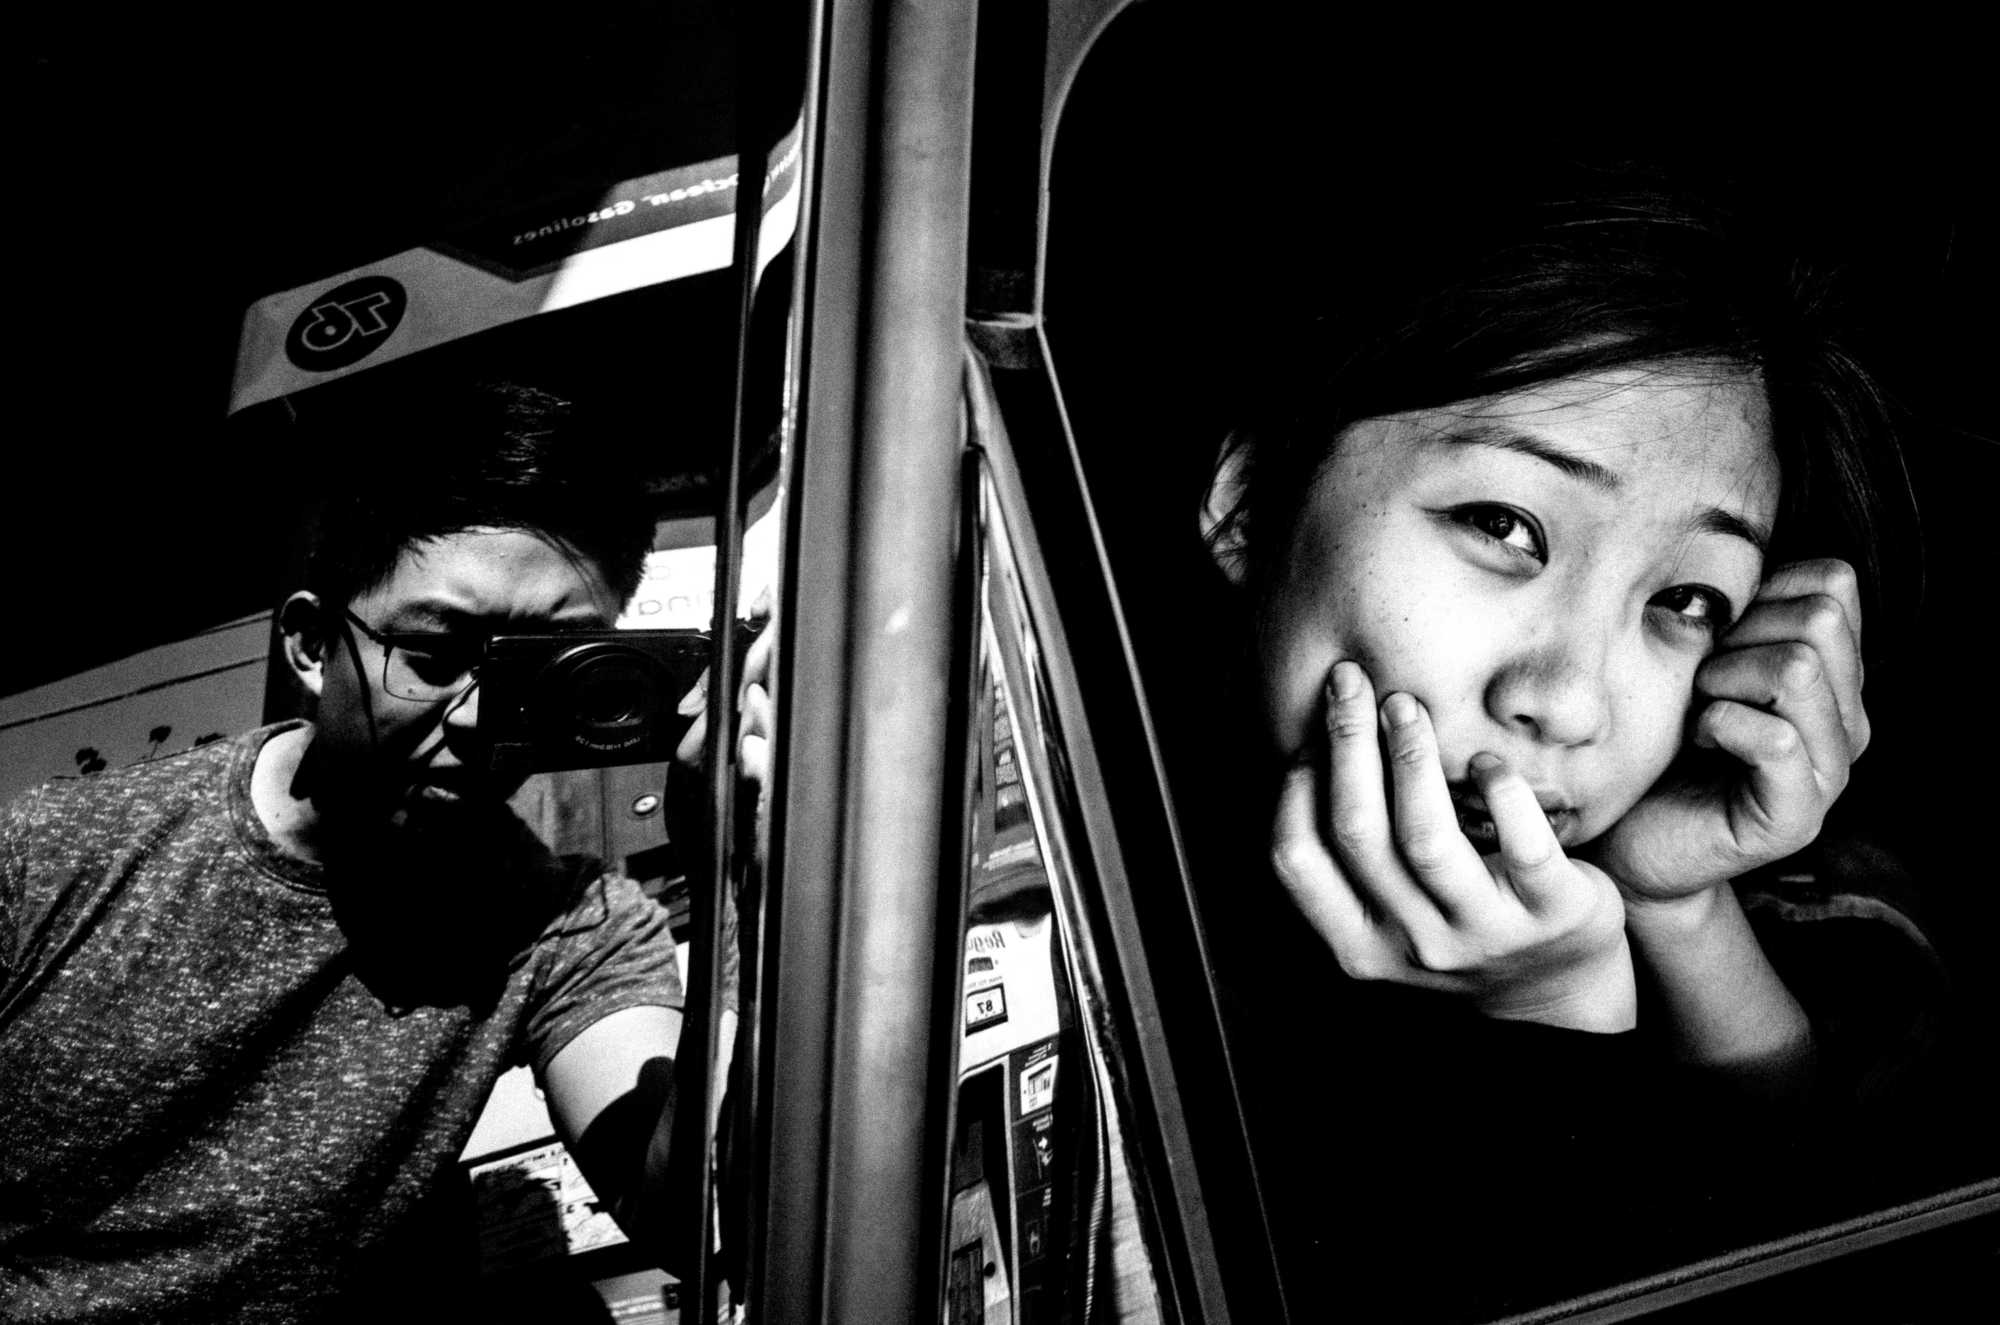 eric-kim-photography-cindy-project-black-and-white-12-self-portrait-ricohgr-car